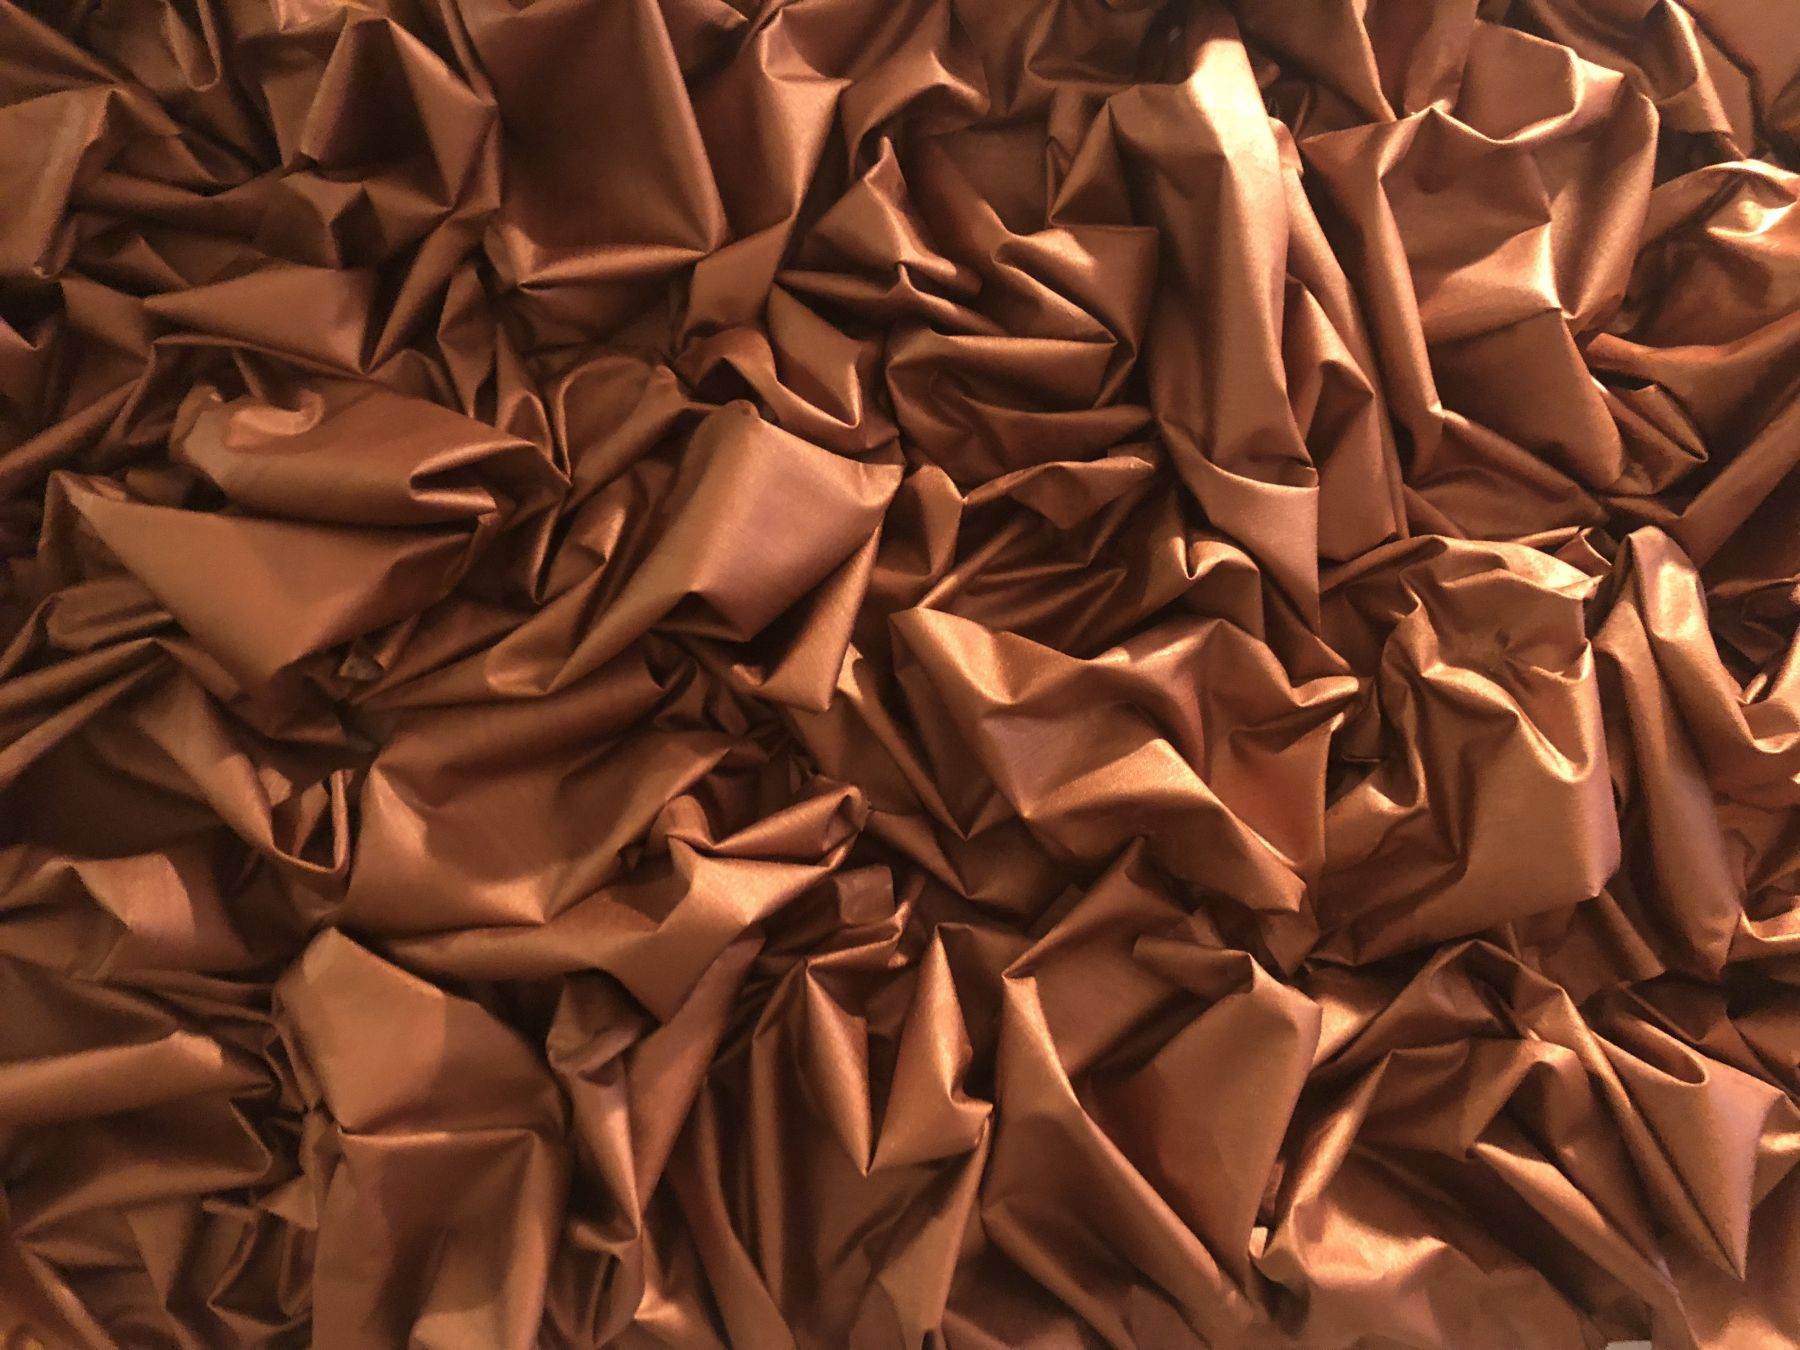 Folded Copper from Unfolded by Michel Abboud